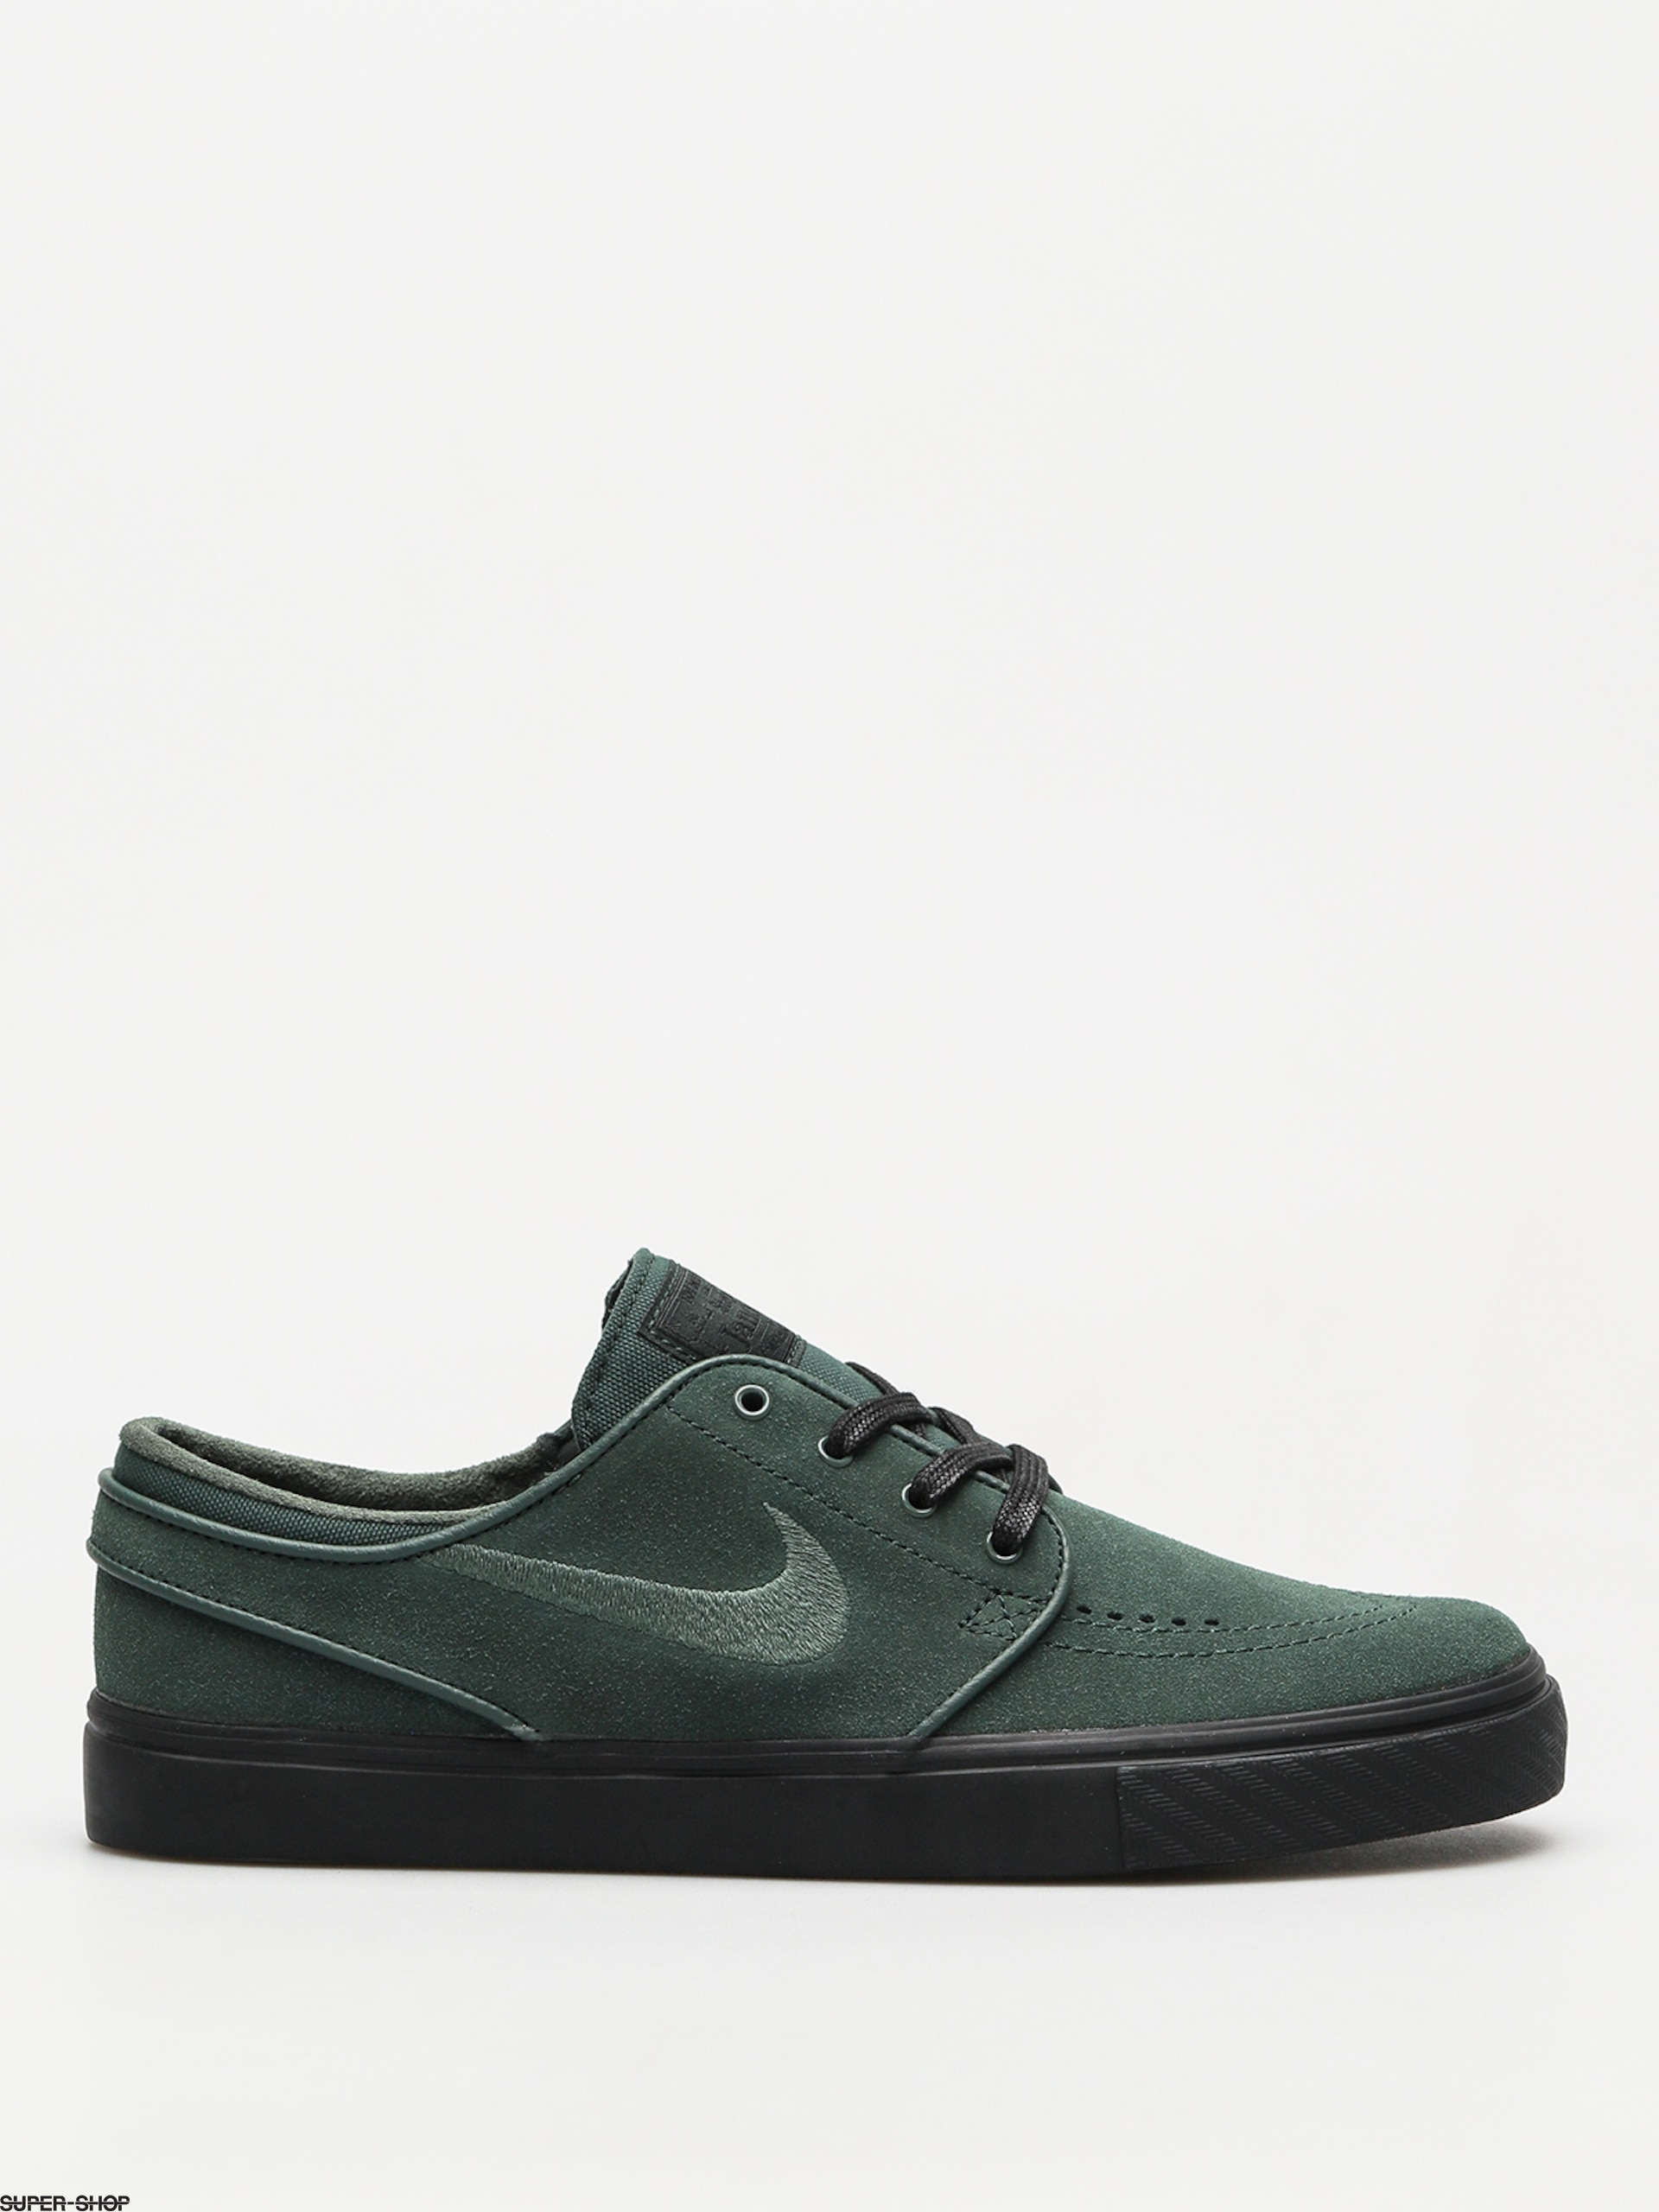 proposición Para editar Mojado  Nike SB Shoes Zoom Stefan Janoski (midnight green/midnight green black)